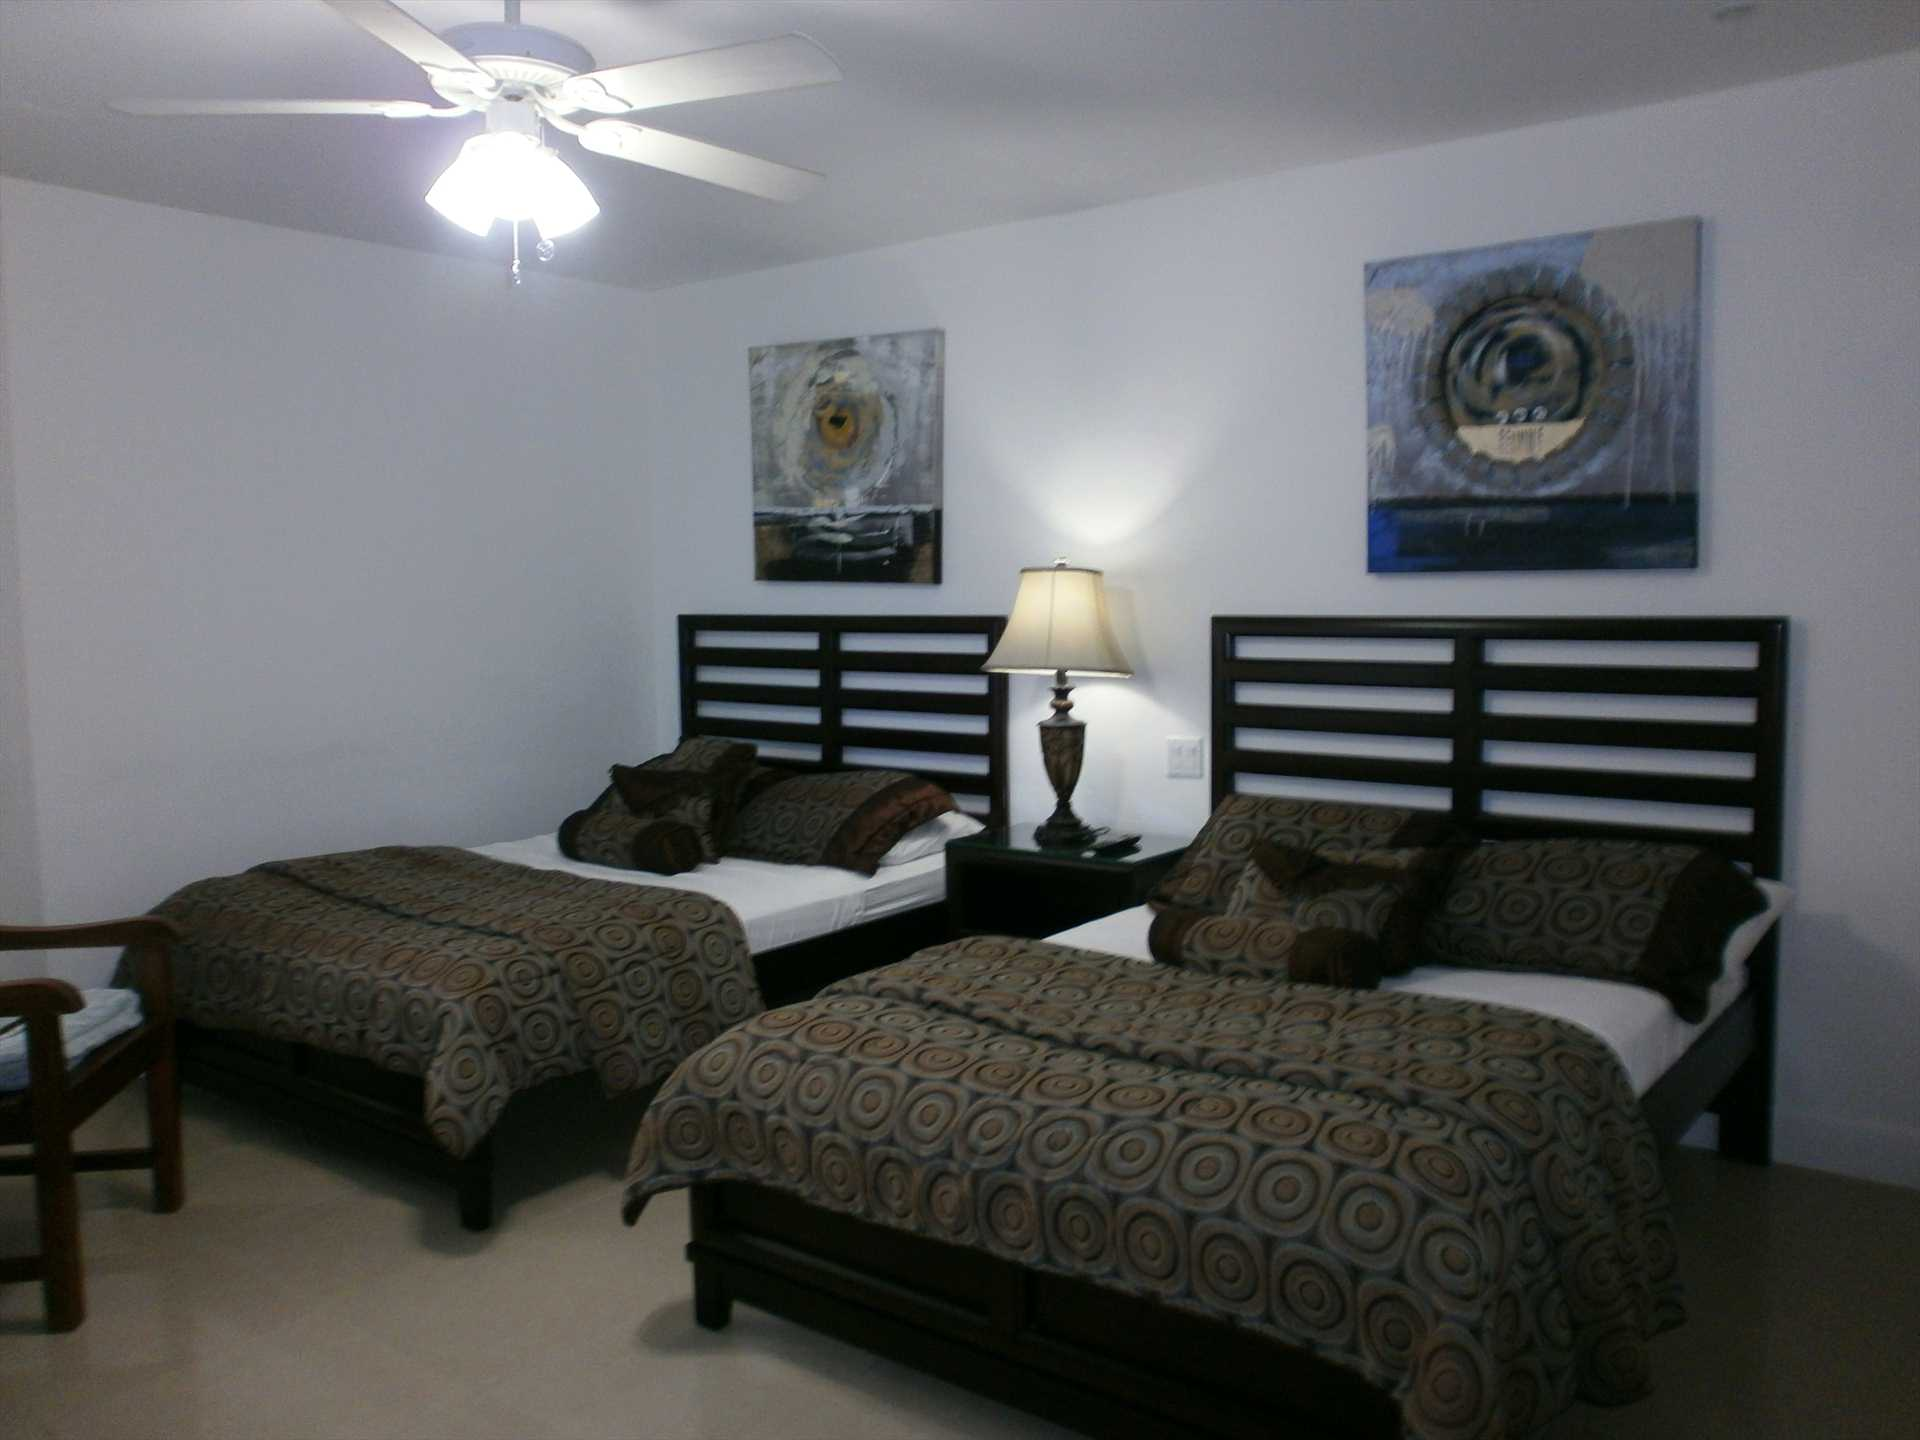 Second bedroom with two double (=full-size) beds